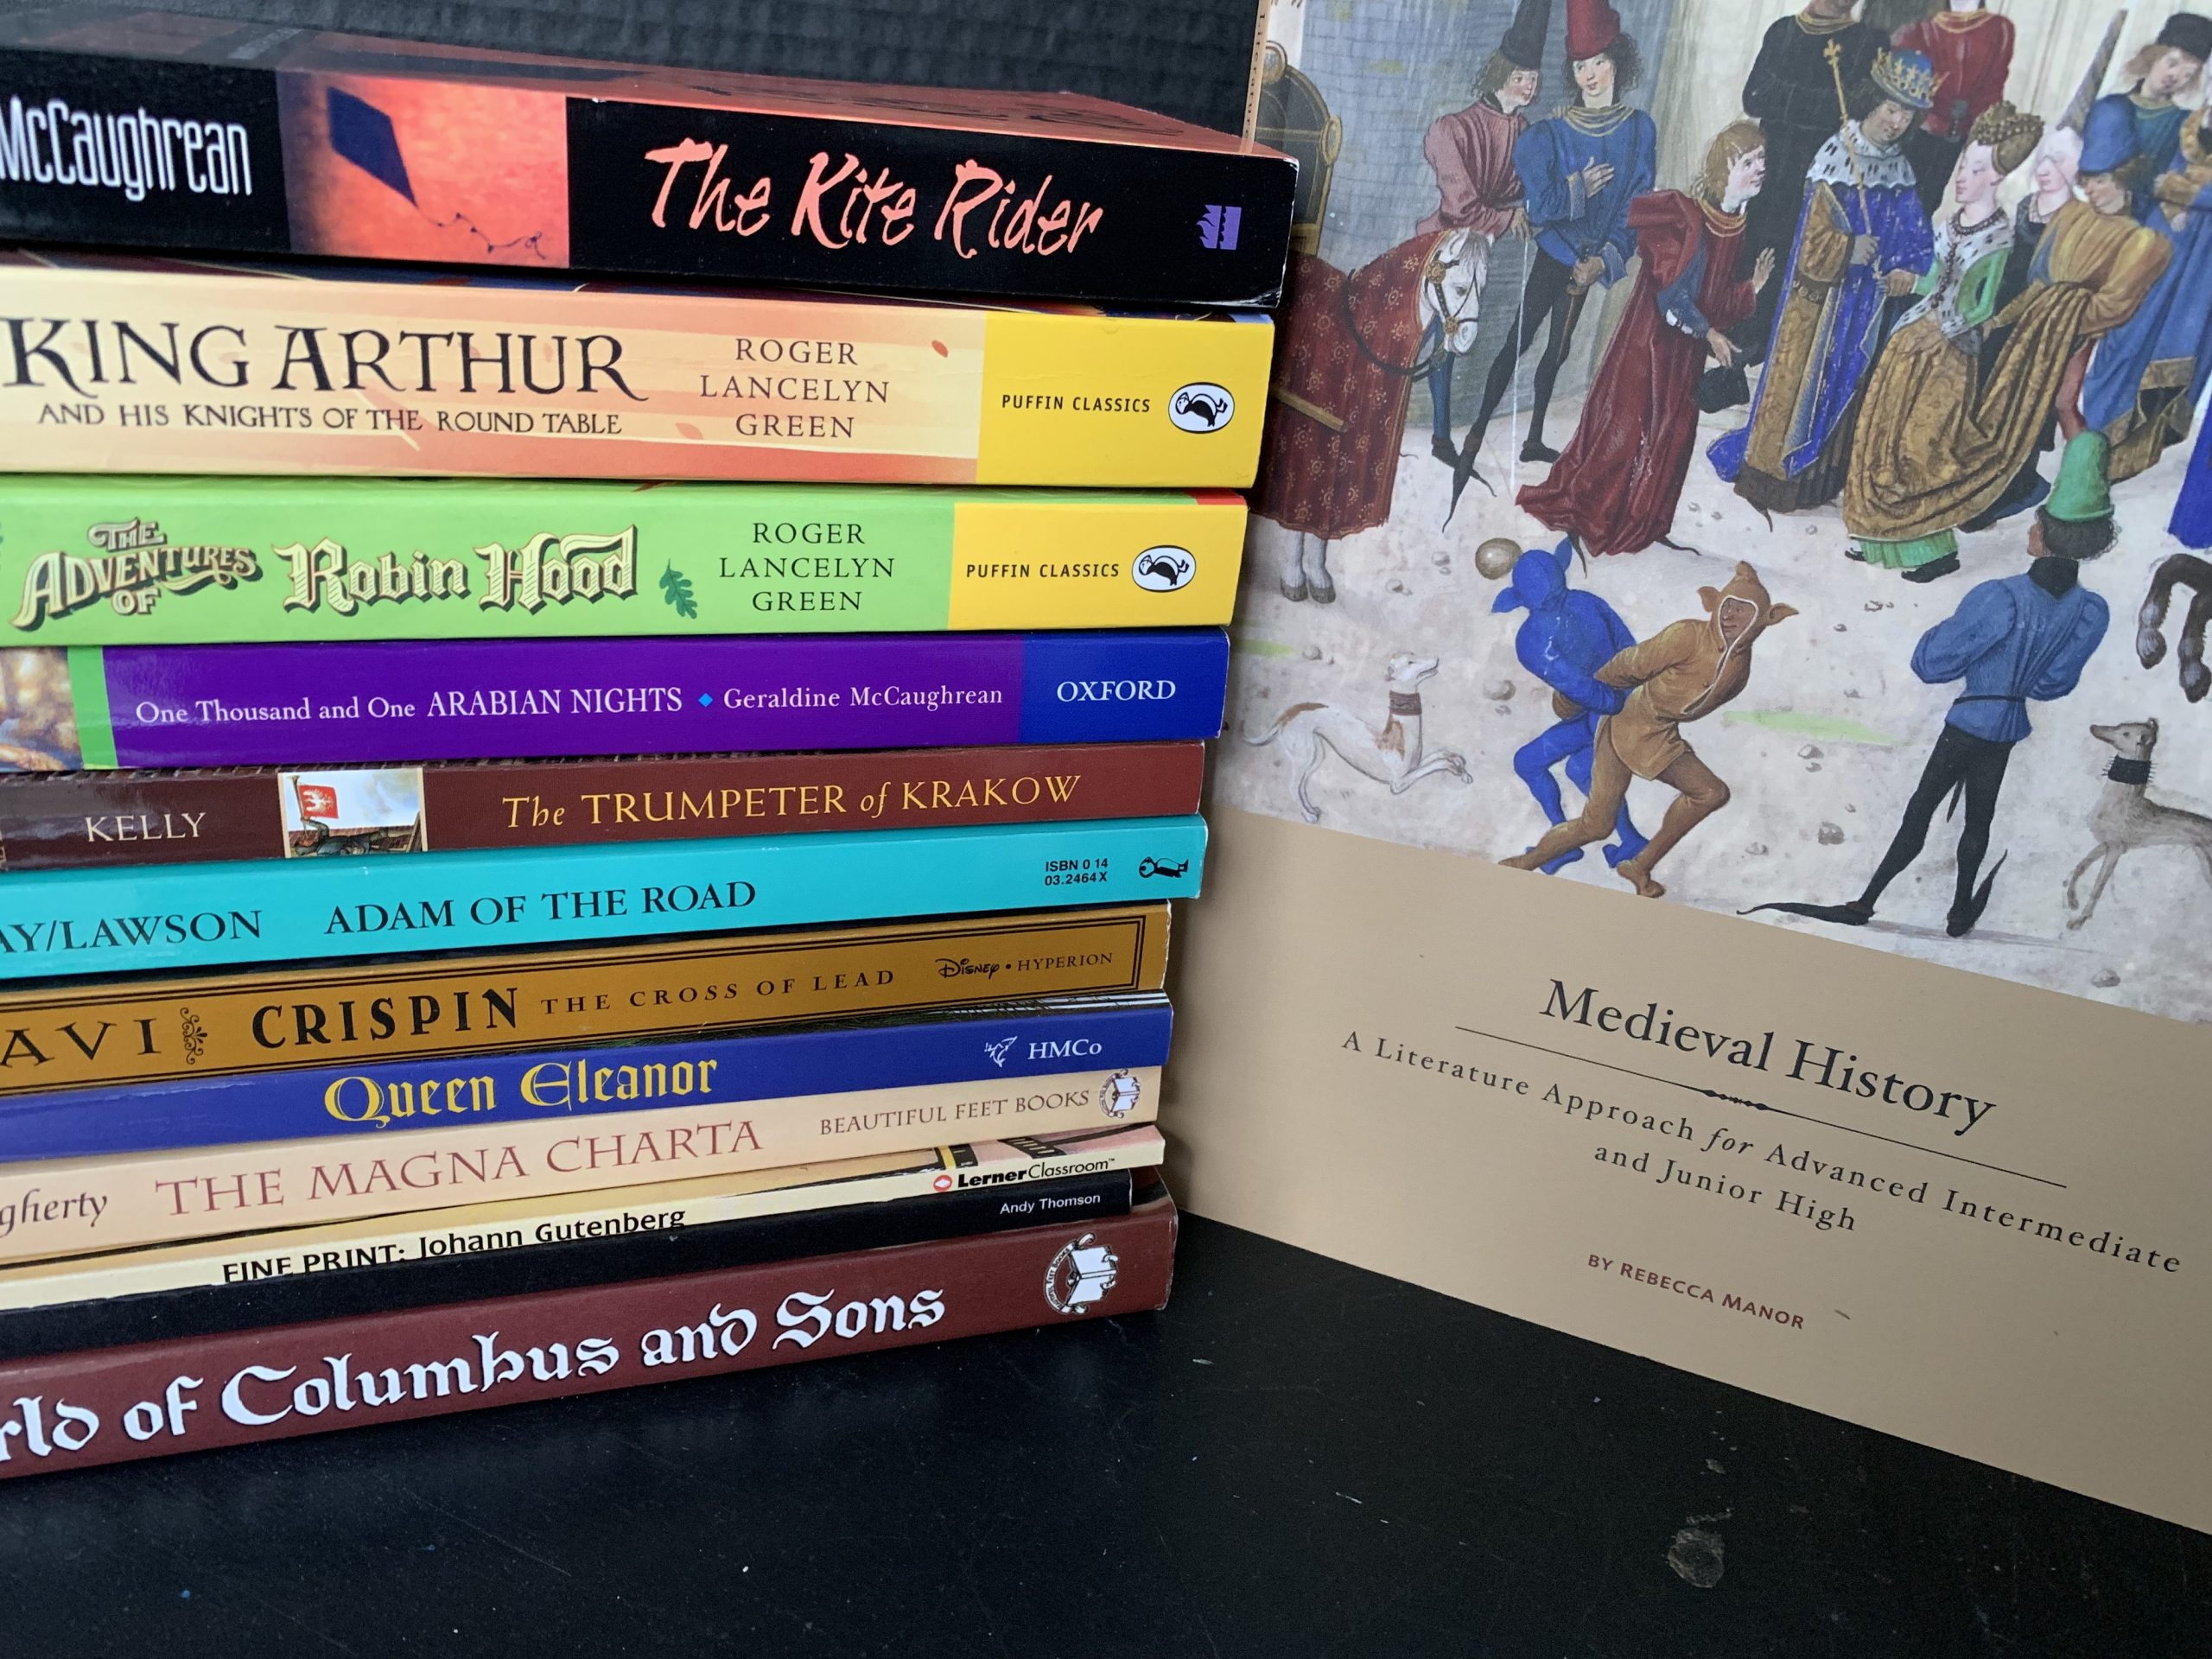 Medieval History with Beautiful Feet books